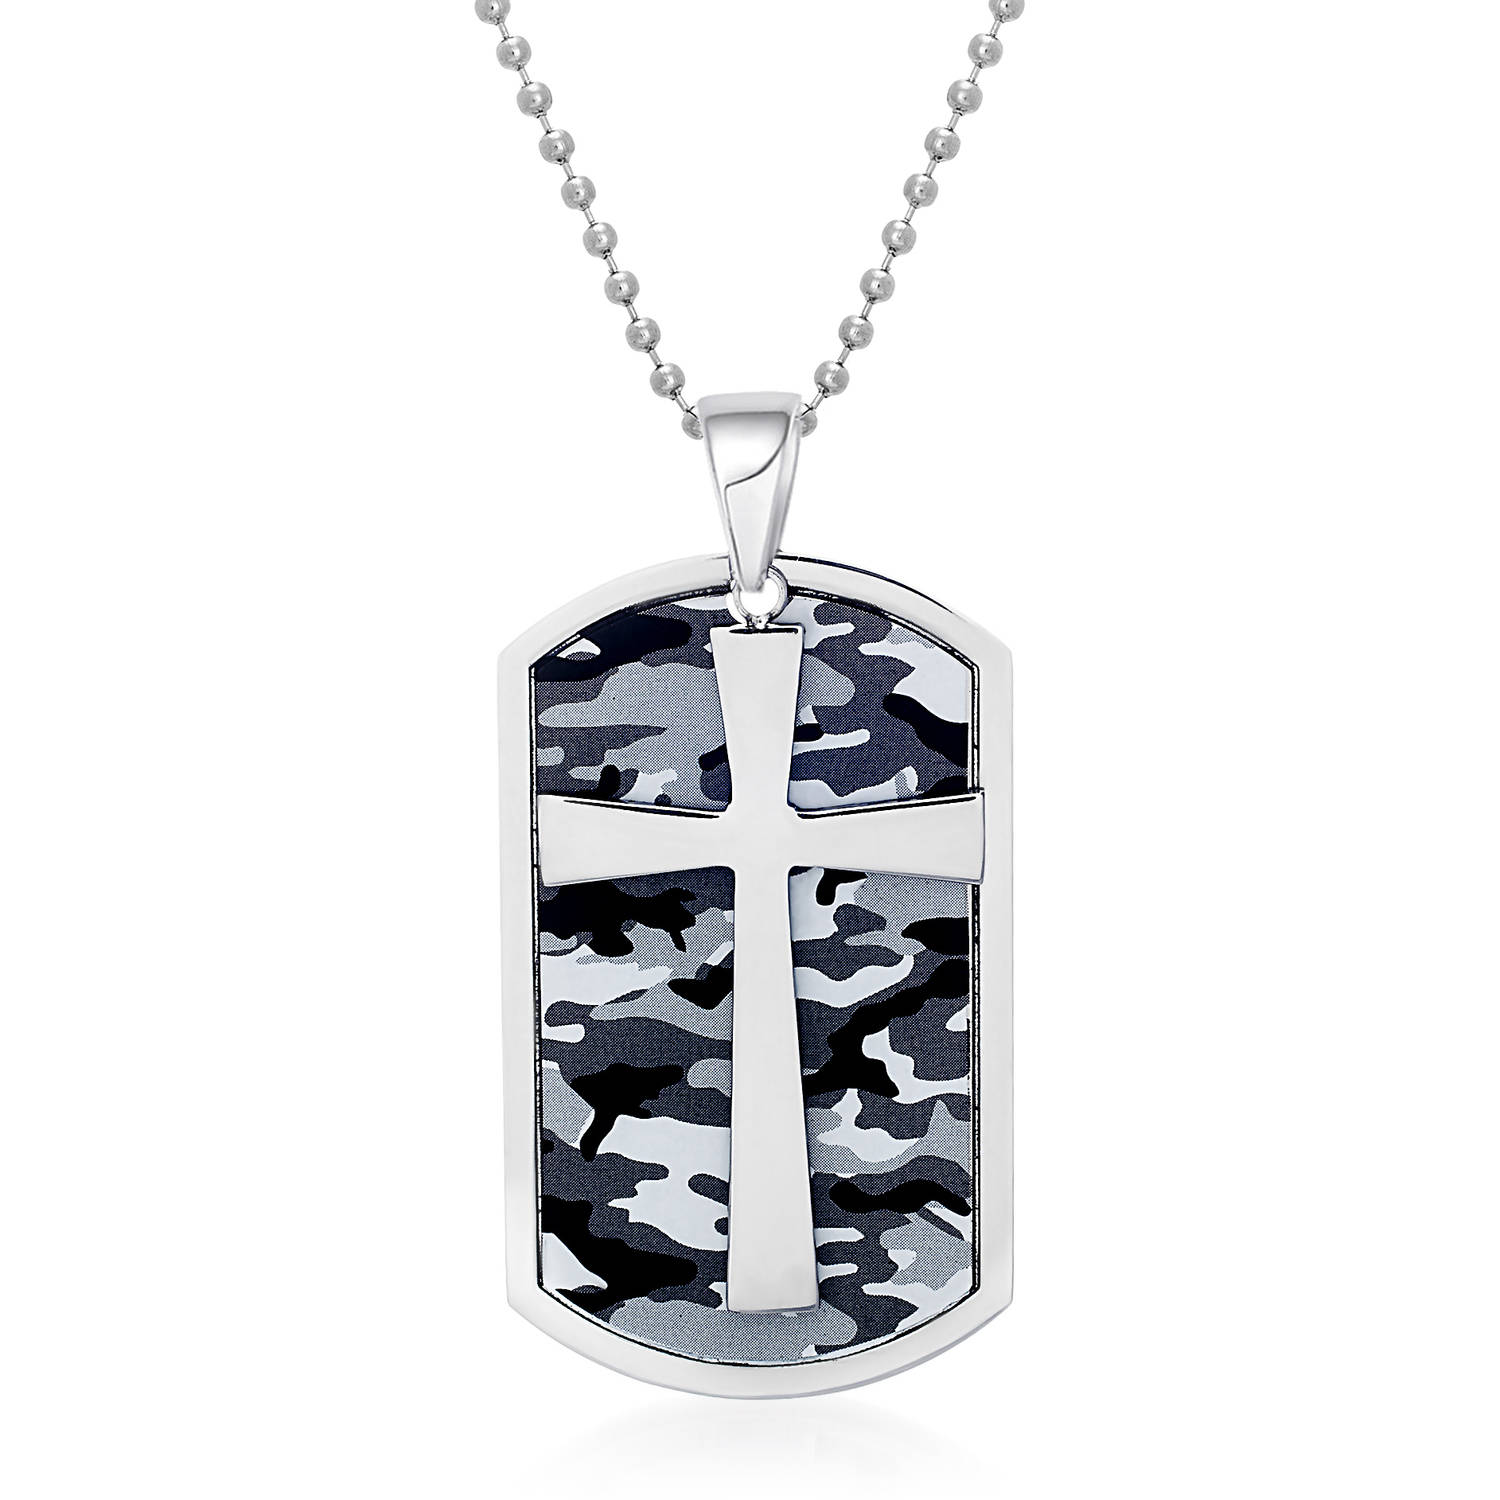 Men's Stainless Steel Camo and Cross Dog Tag Pendant